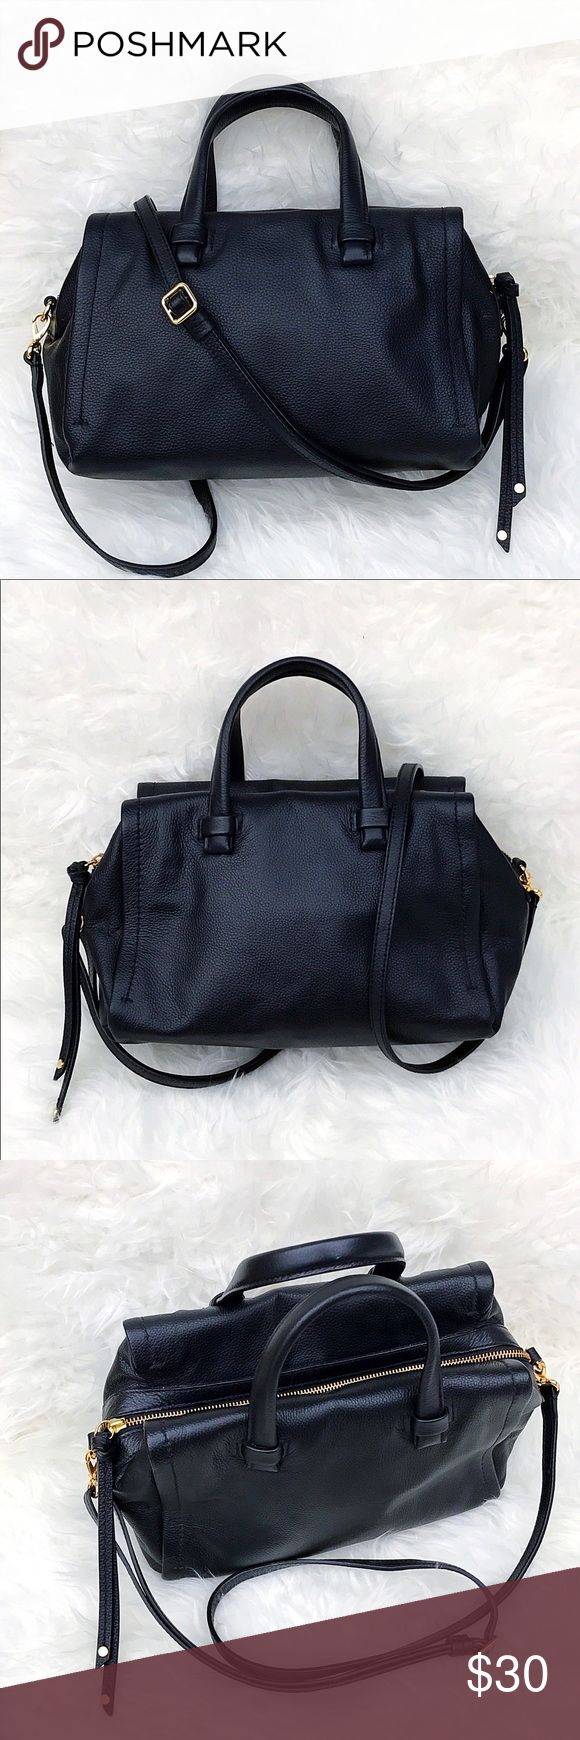 Banana Republic Black Leather Satchel Handbag Banana Republic Black Leather Satchel Handbag. This gorgeous everyday satchel features an all black leather body, gold hardware, and black fabric interior lining. Condition: Gentle Use Banana Republic Bags Satchels